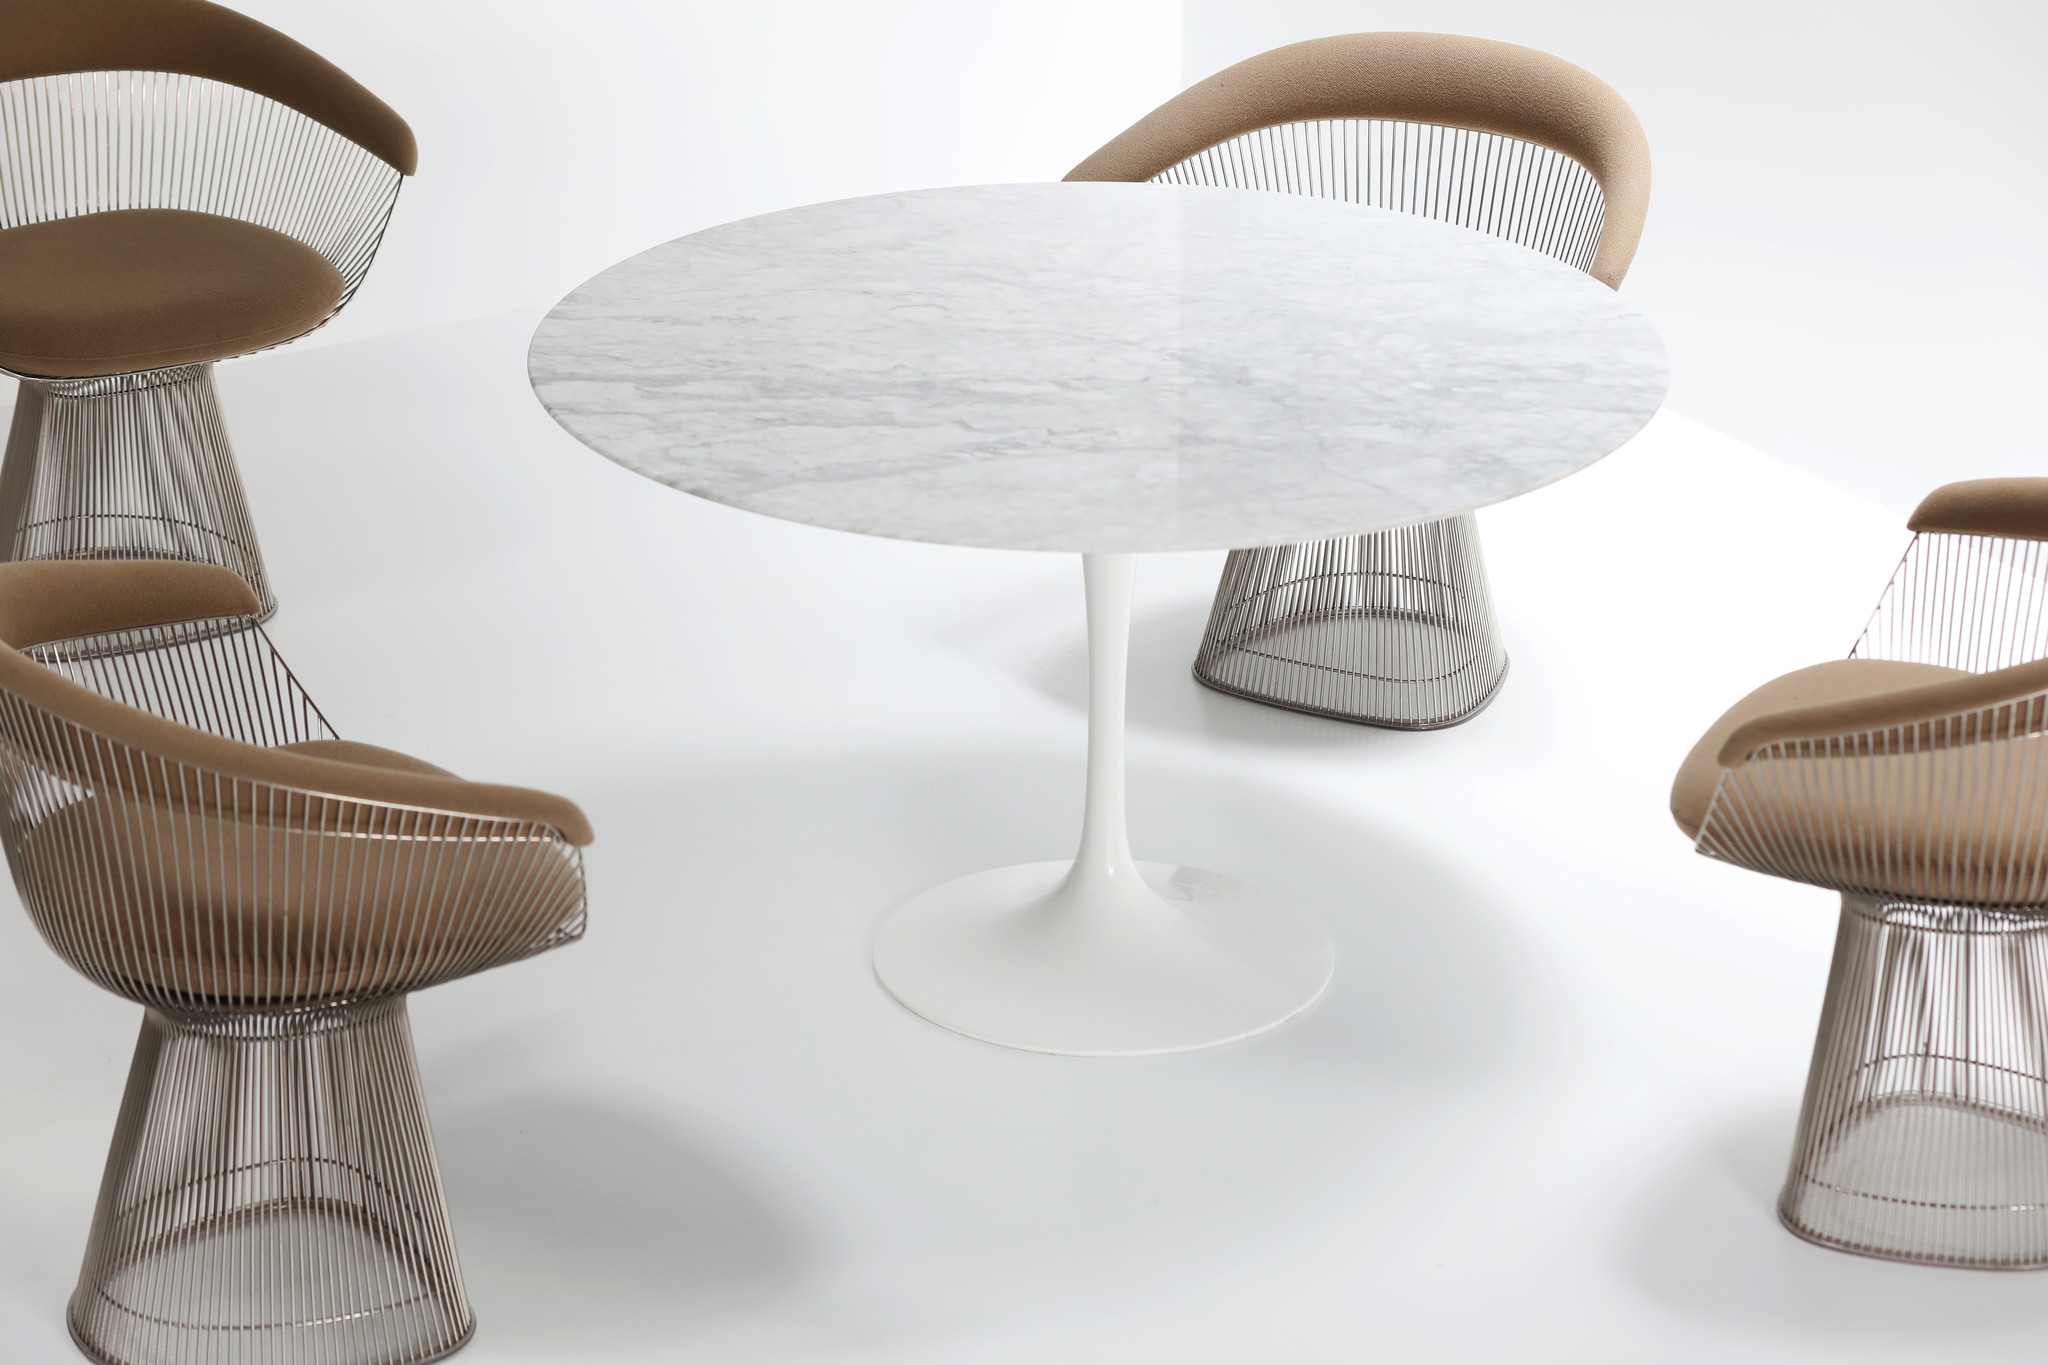 Marble Knoll tulip table designed by Eero Saarinen